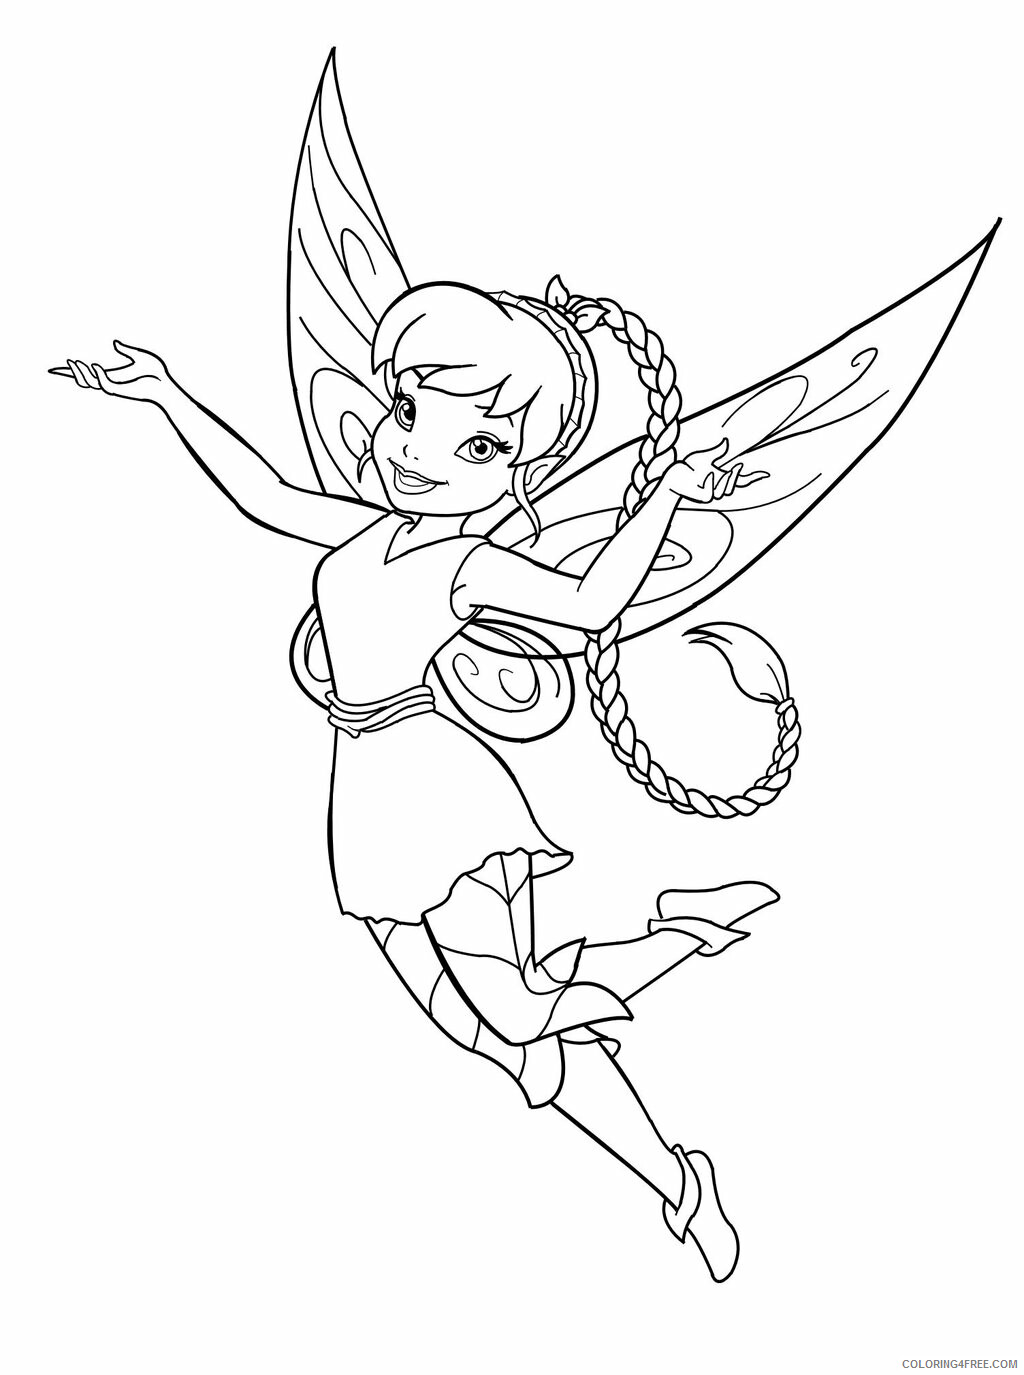 Fairy Coloring Pages Fairy Printable 2021 2319 Coloring4free